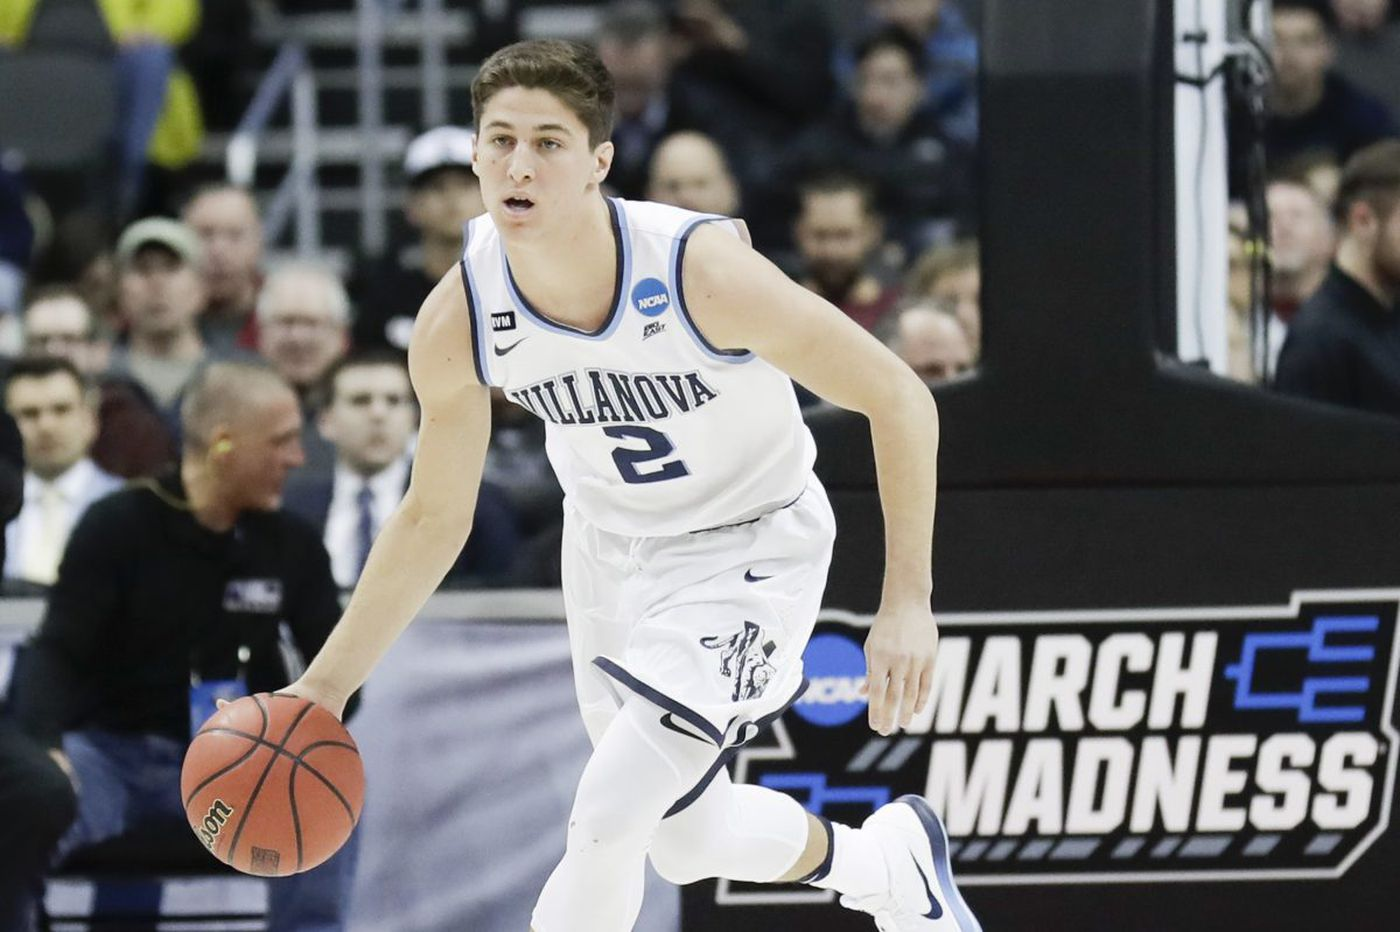 Villanova hopes a younger roster can match previous March Madness success